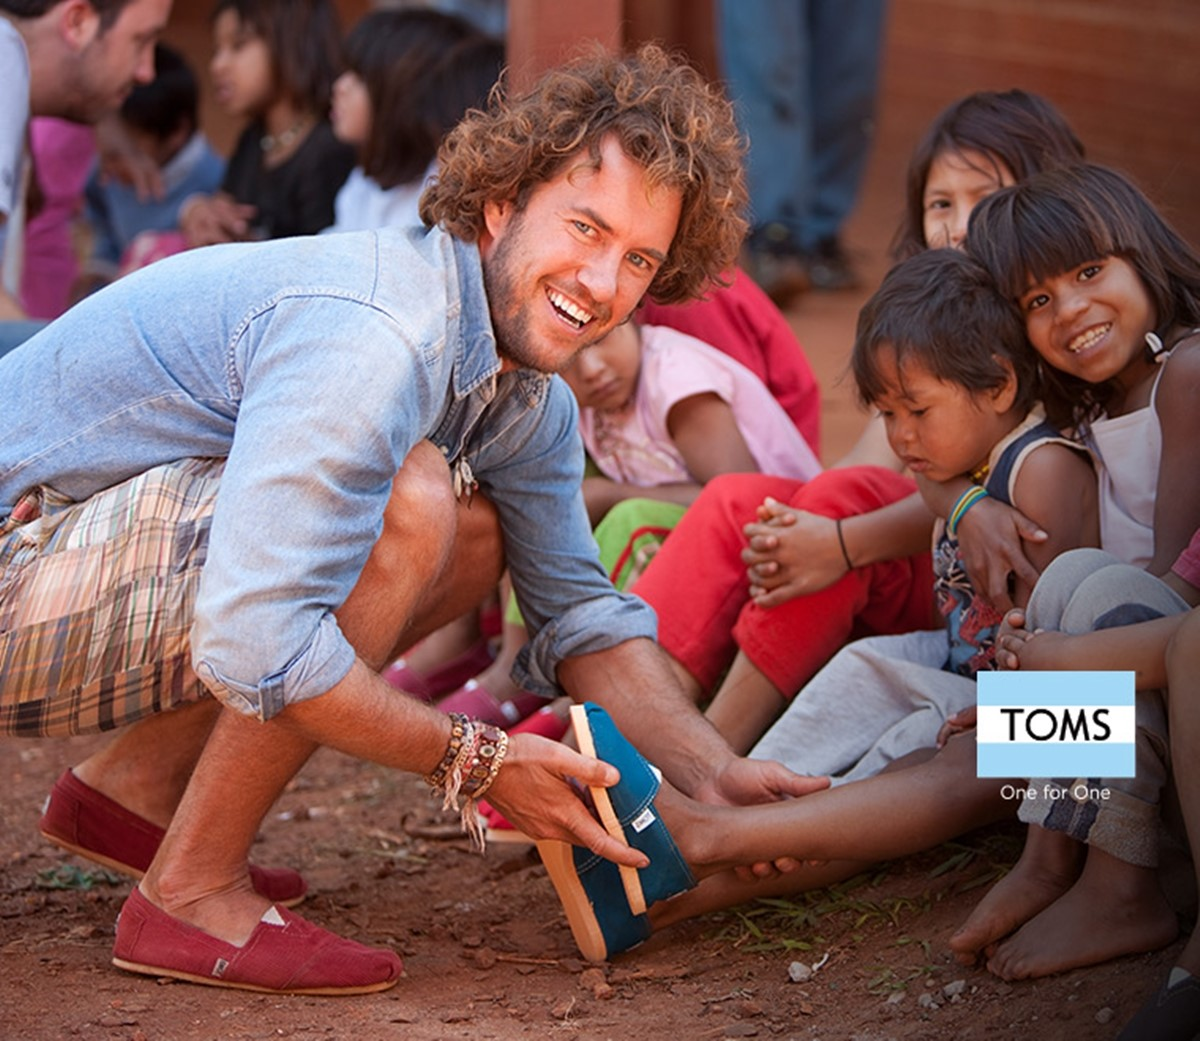 Toms's Founder